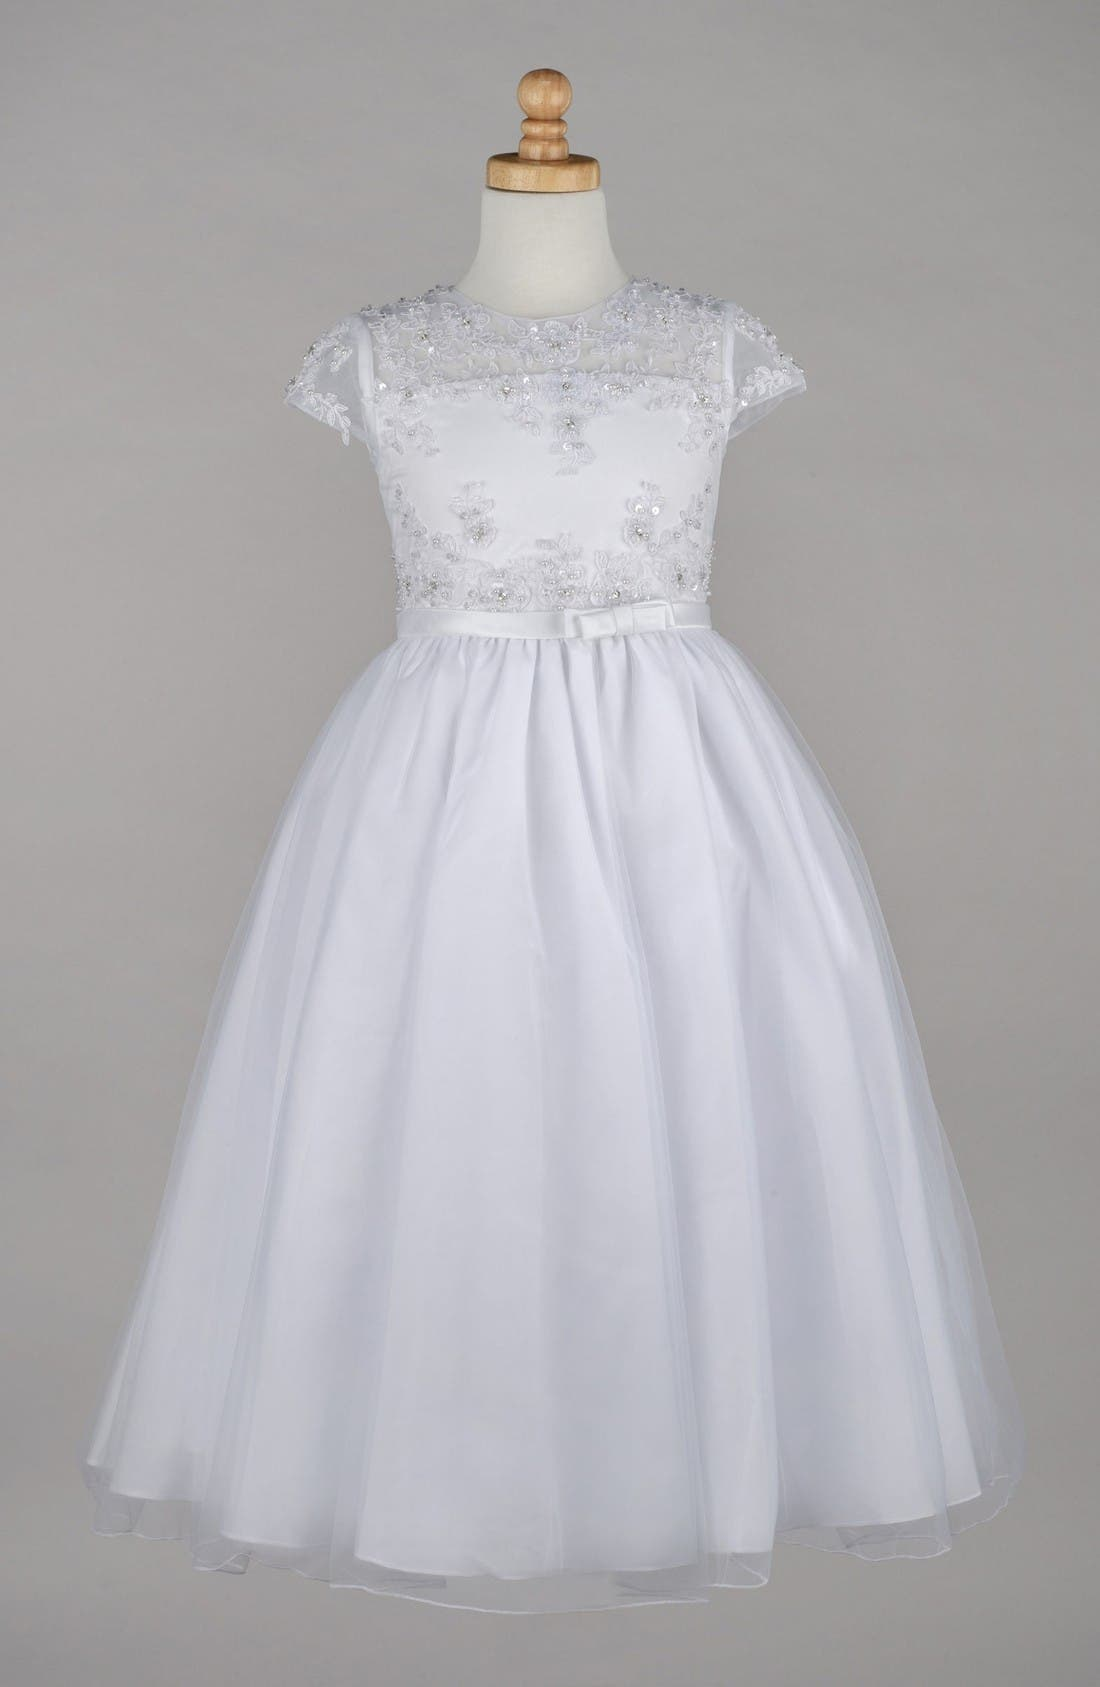 Lauren Marie Beaded Lace Bodice First Communion Dress (Little Girls & Big Girls)